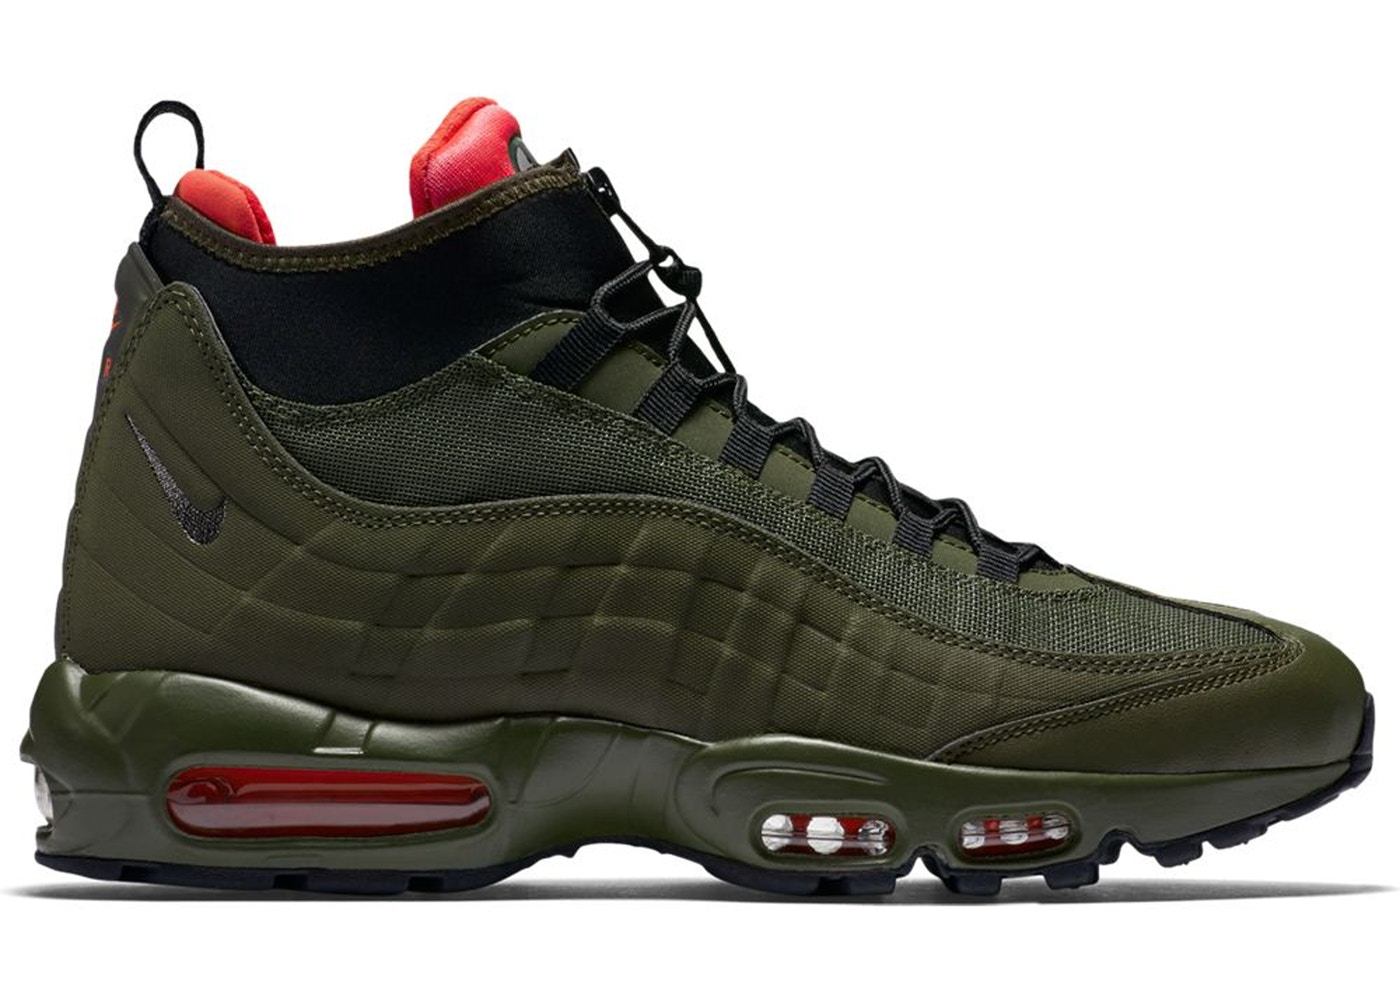 new arrival 3aa47 9ac3a Air Max 95 Sneakerboot Dark Loden